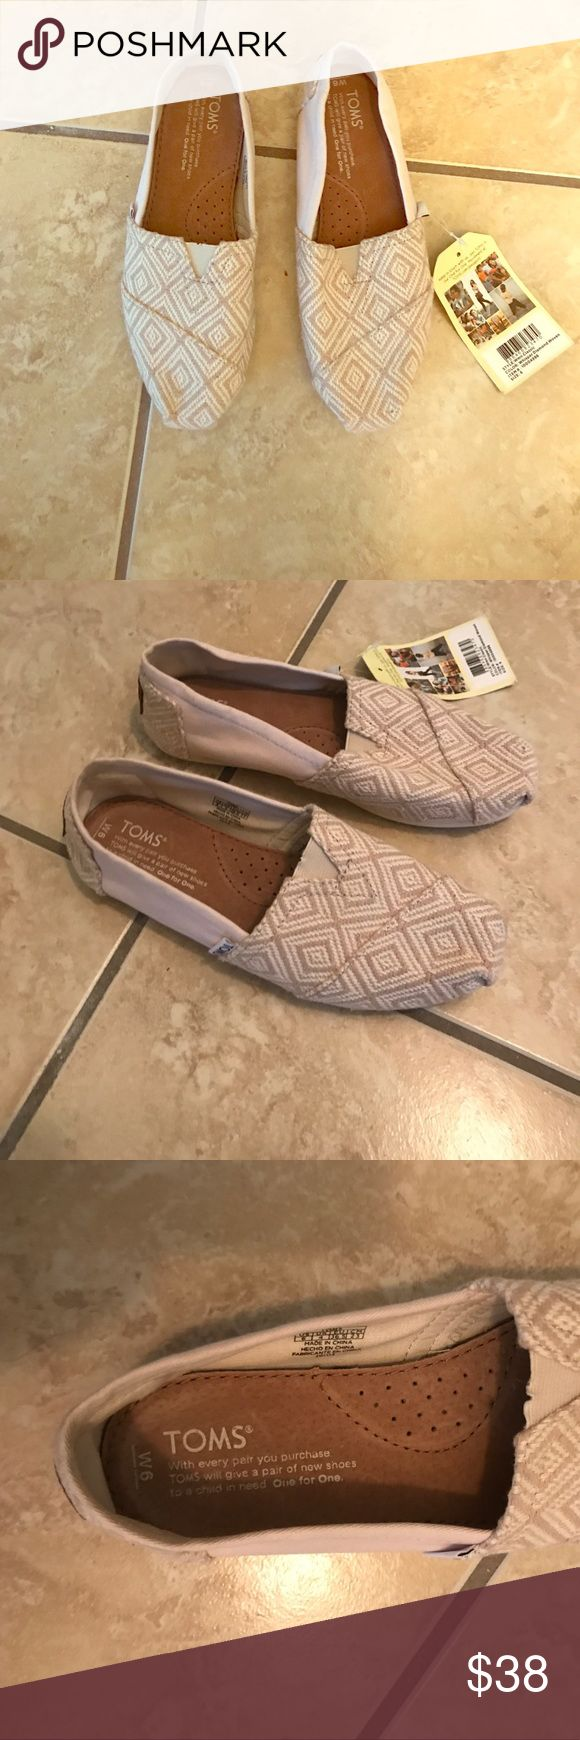 Tom's shoes Classic Whisper Diamond Woven Toms shoes, never been worn Toms Shoes Flats & Loafers